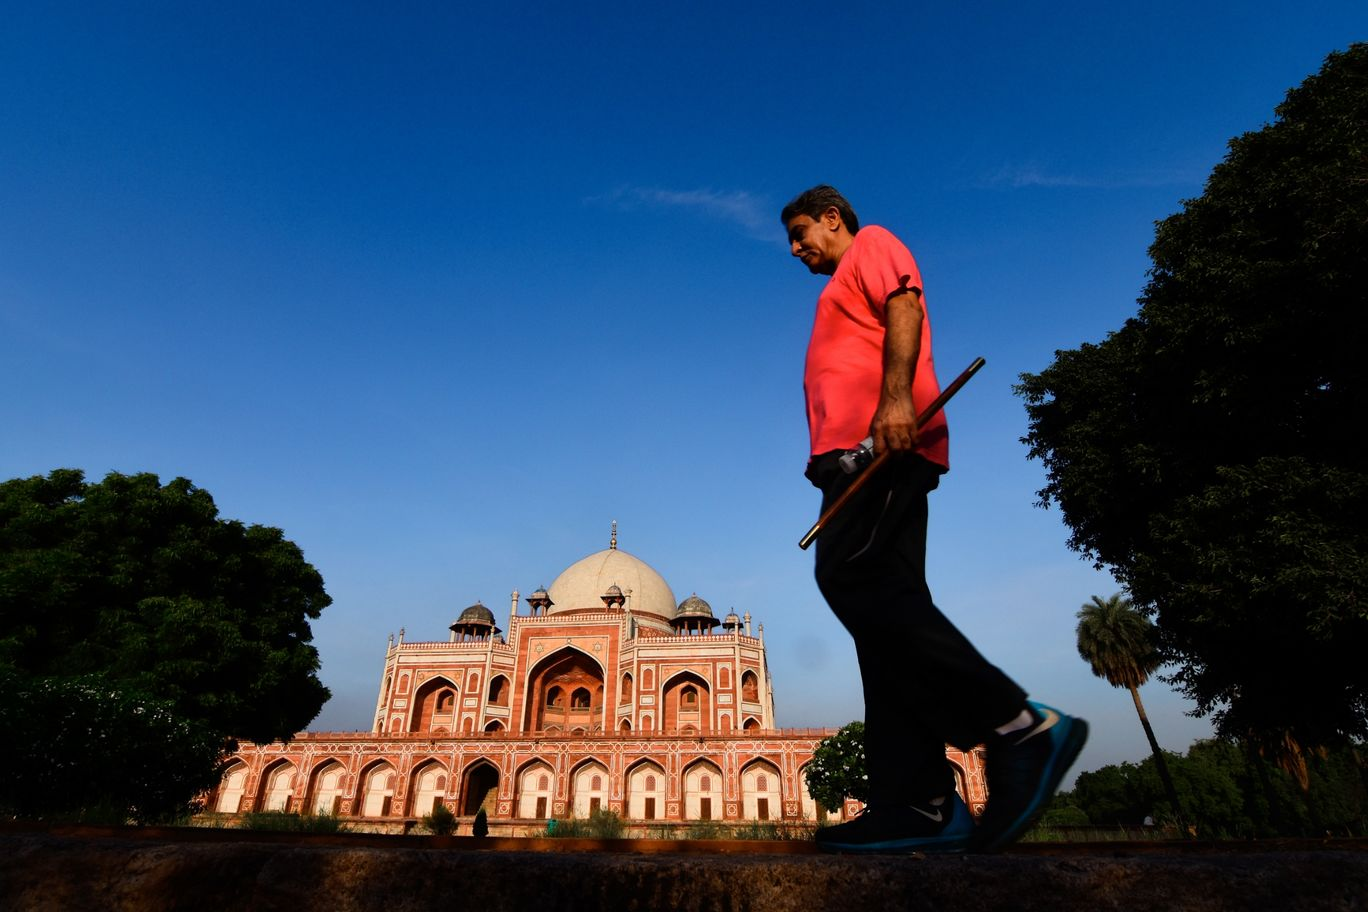 Photo of Humayun's Tomb By Meghna Agrawal